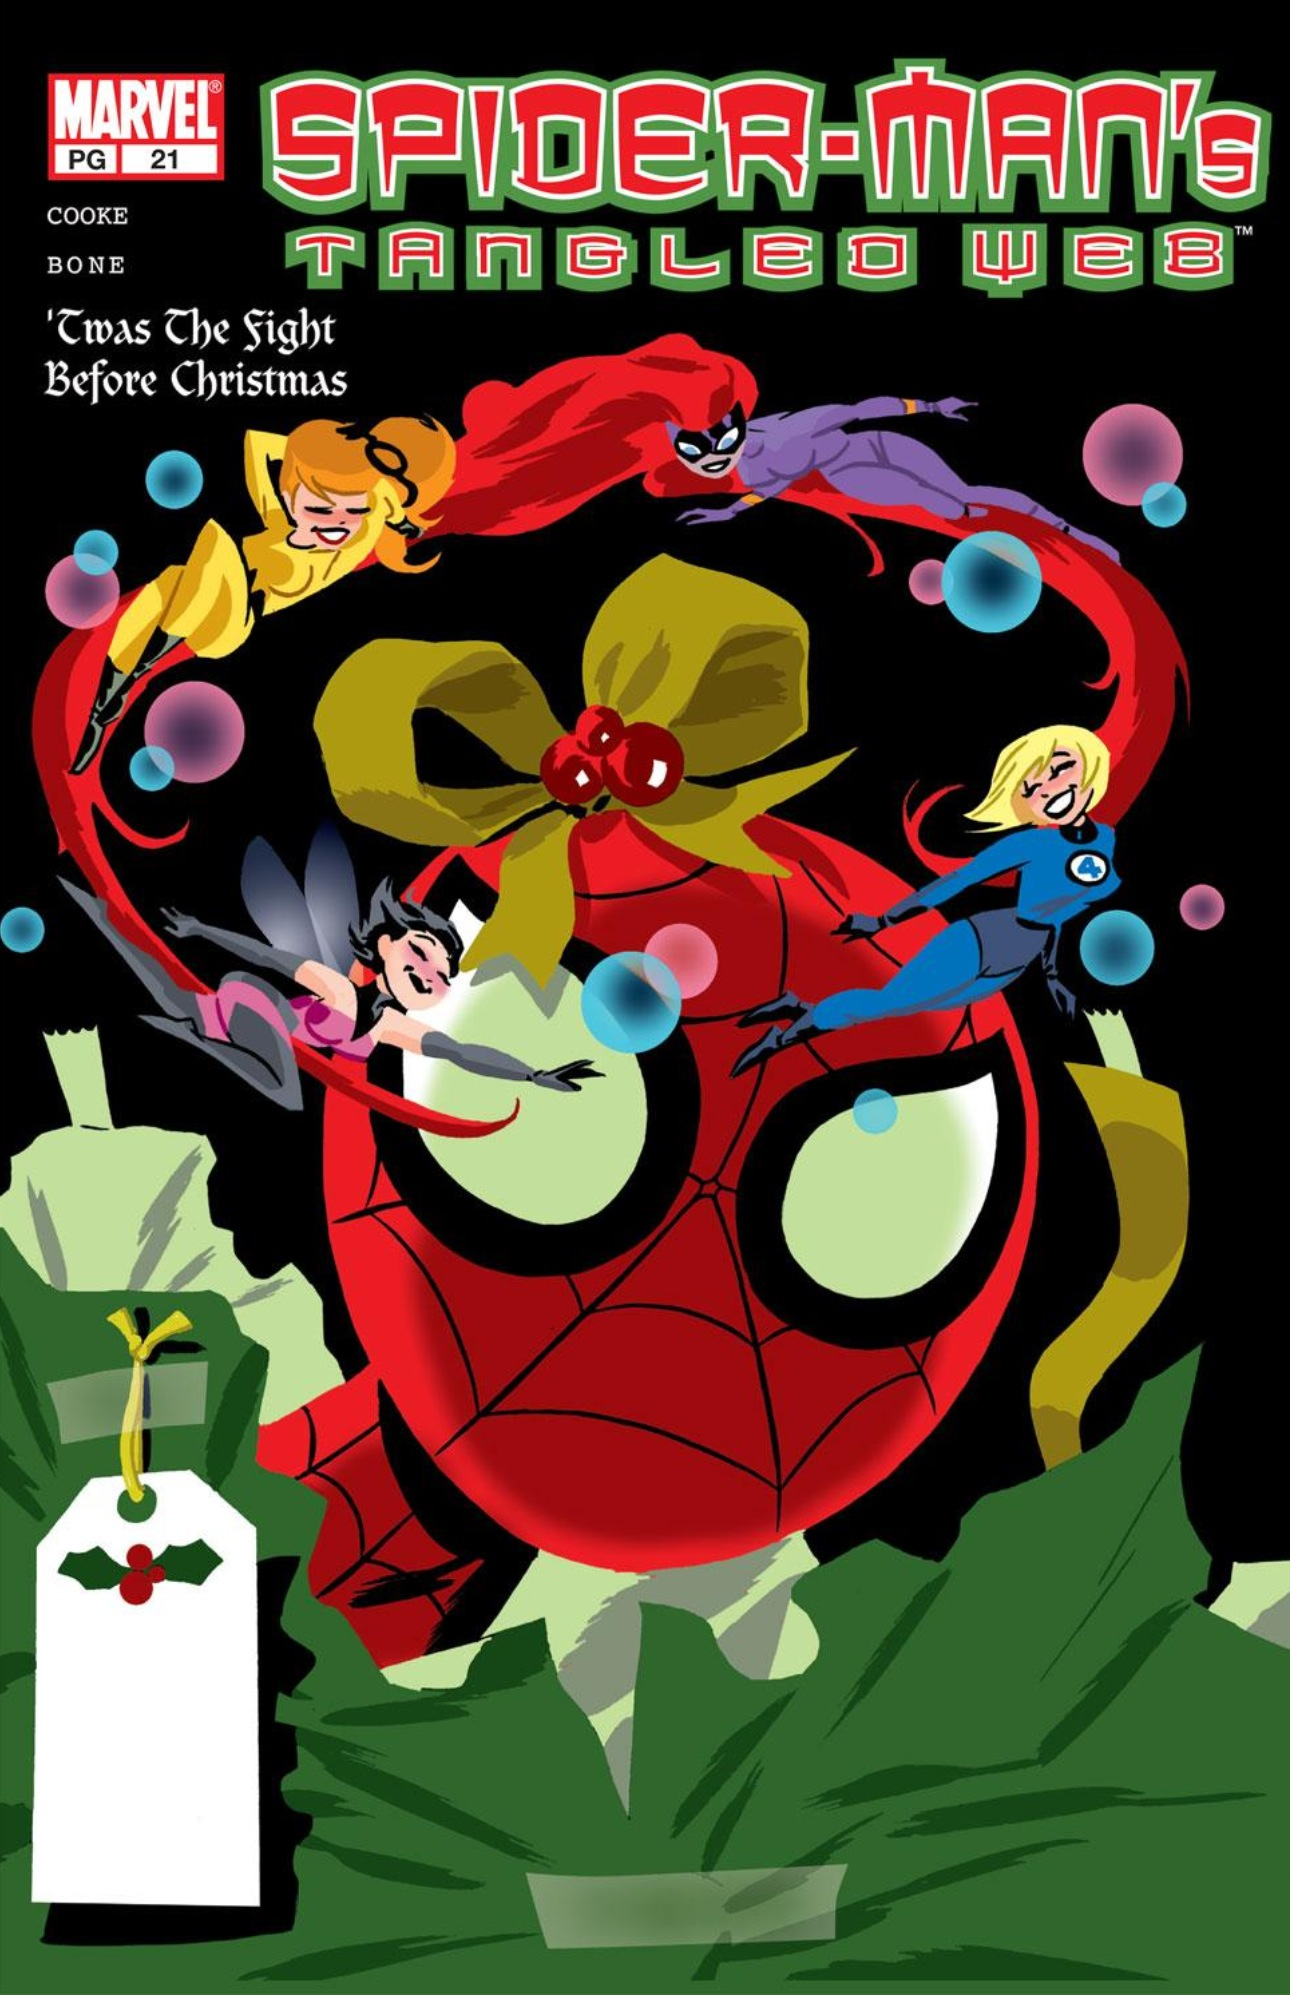 Spiderman Christmas.Spider Man Tangled Web 21 And A Holly Jolly Christmas Issue